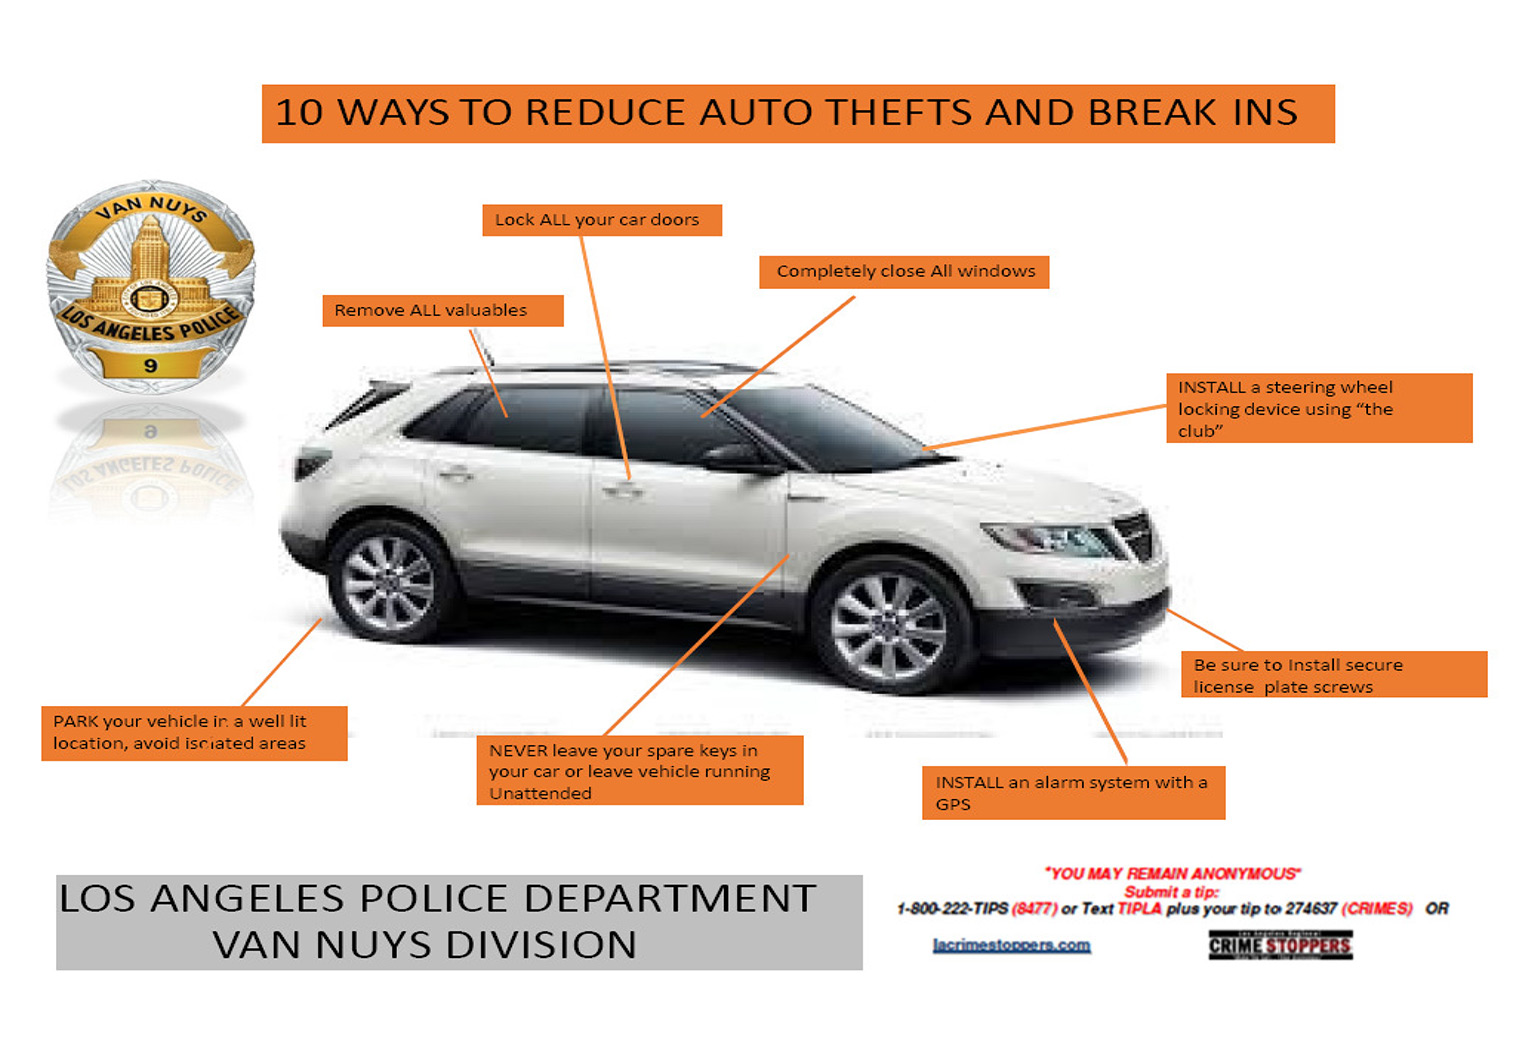 10 ways to reduce auto thefts